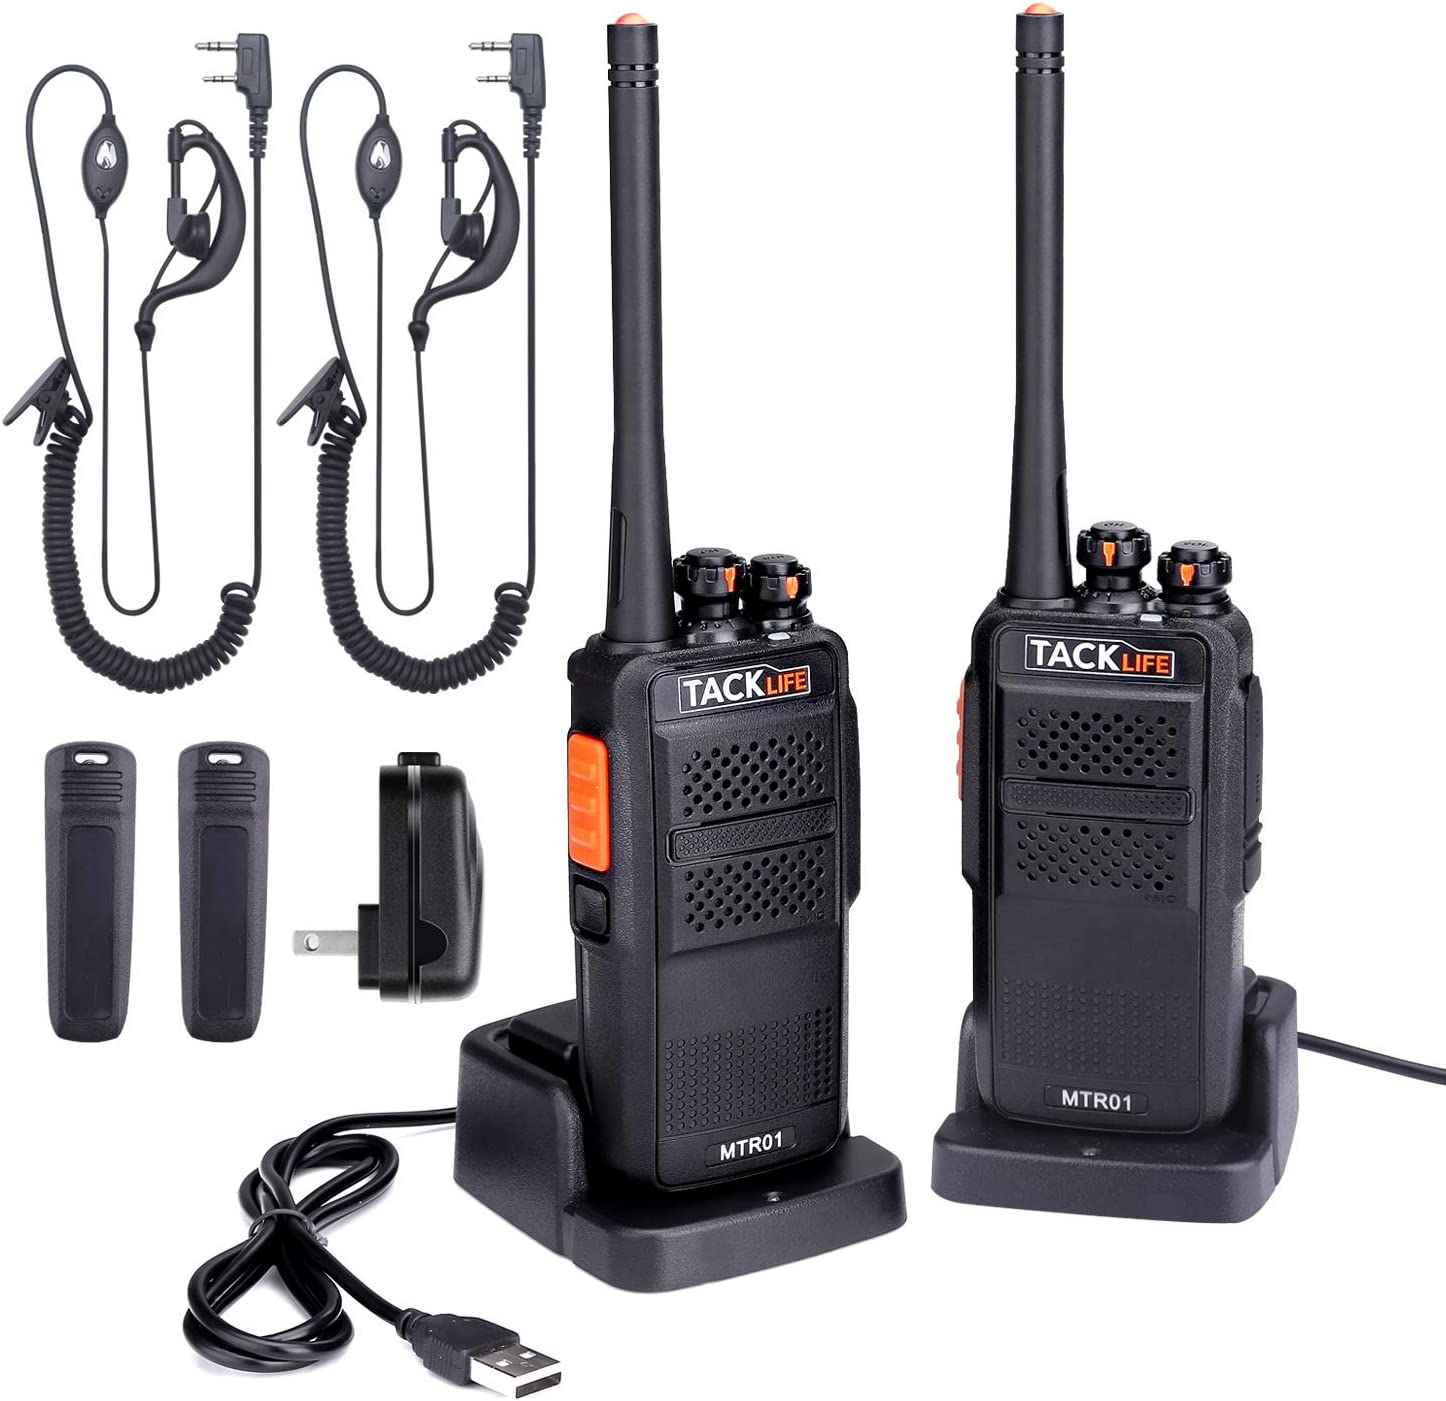 Walkie Talkies Rechargeable, Professional Long Range Two-Way Radios 2-Pack with Earpiece, UHF 400-470MHz, 16 Channels, Li-ion Battery Charging, Charger, Clip Included – MTR01